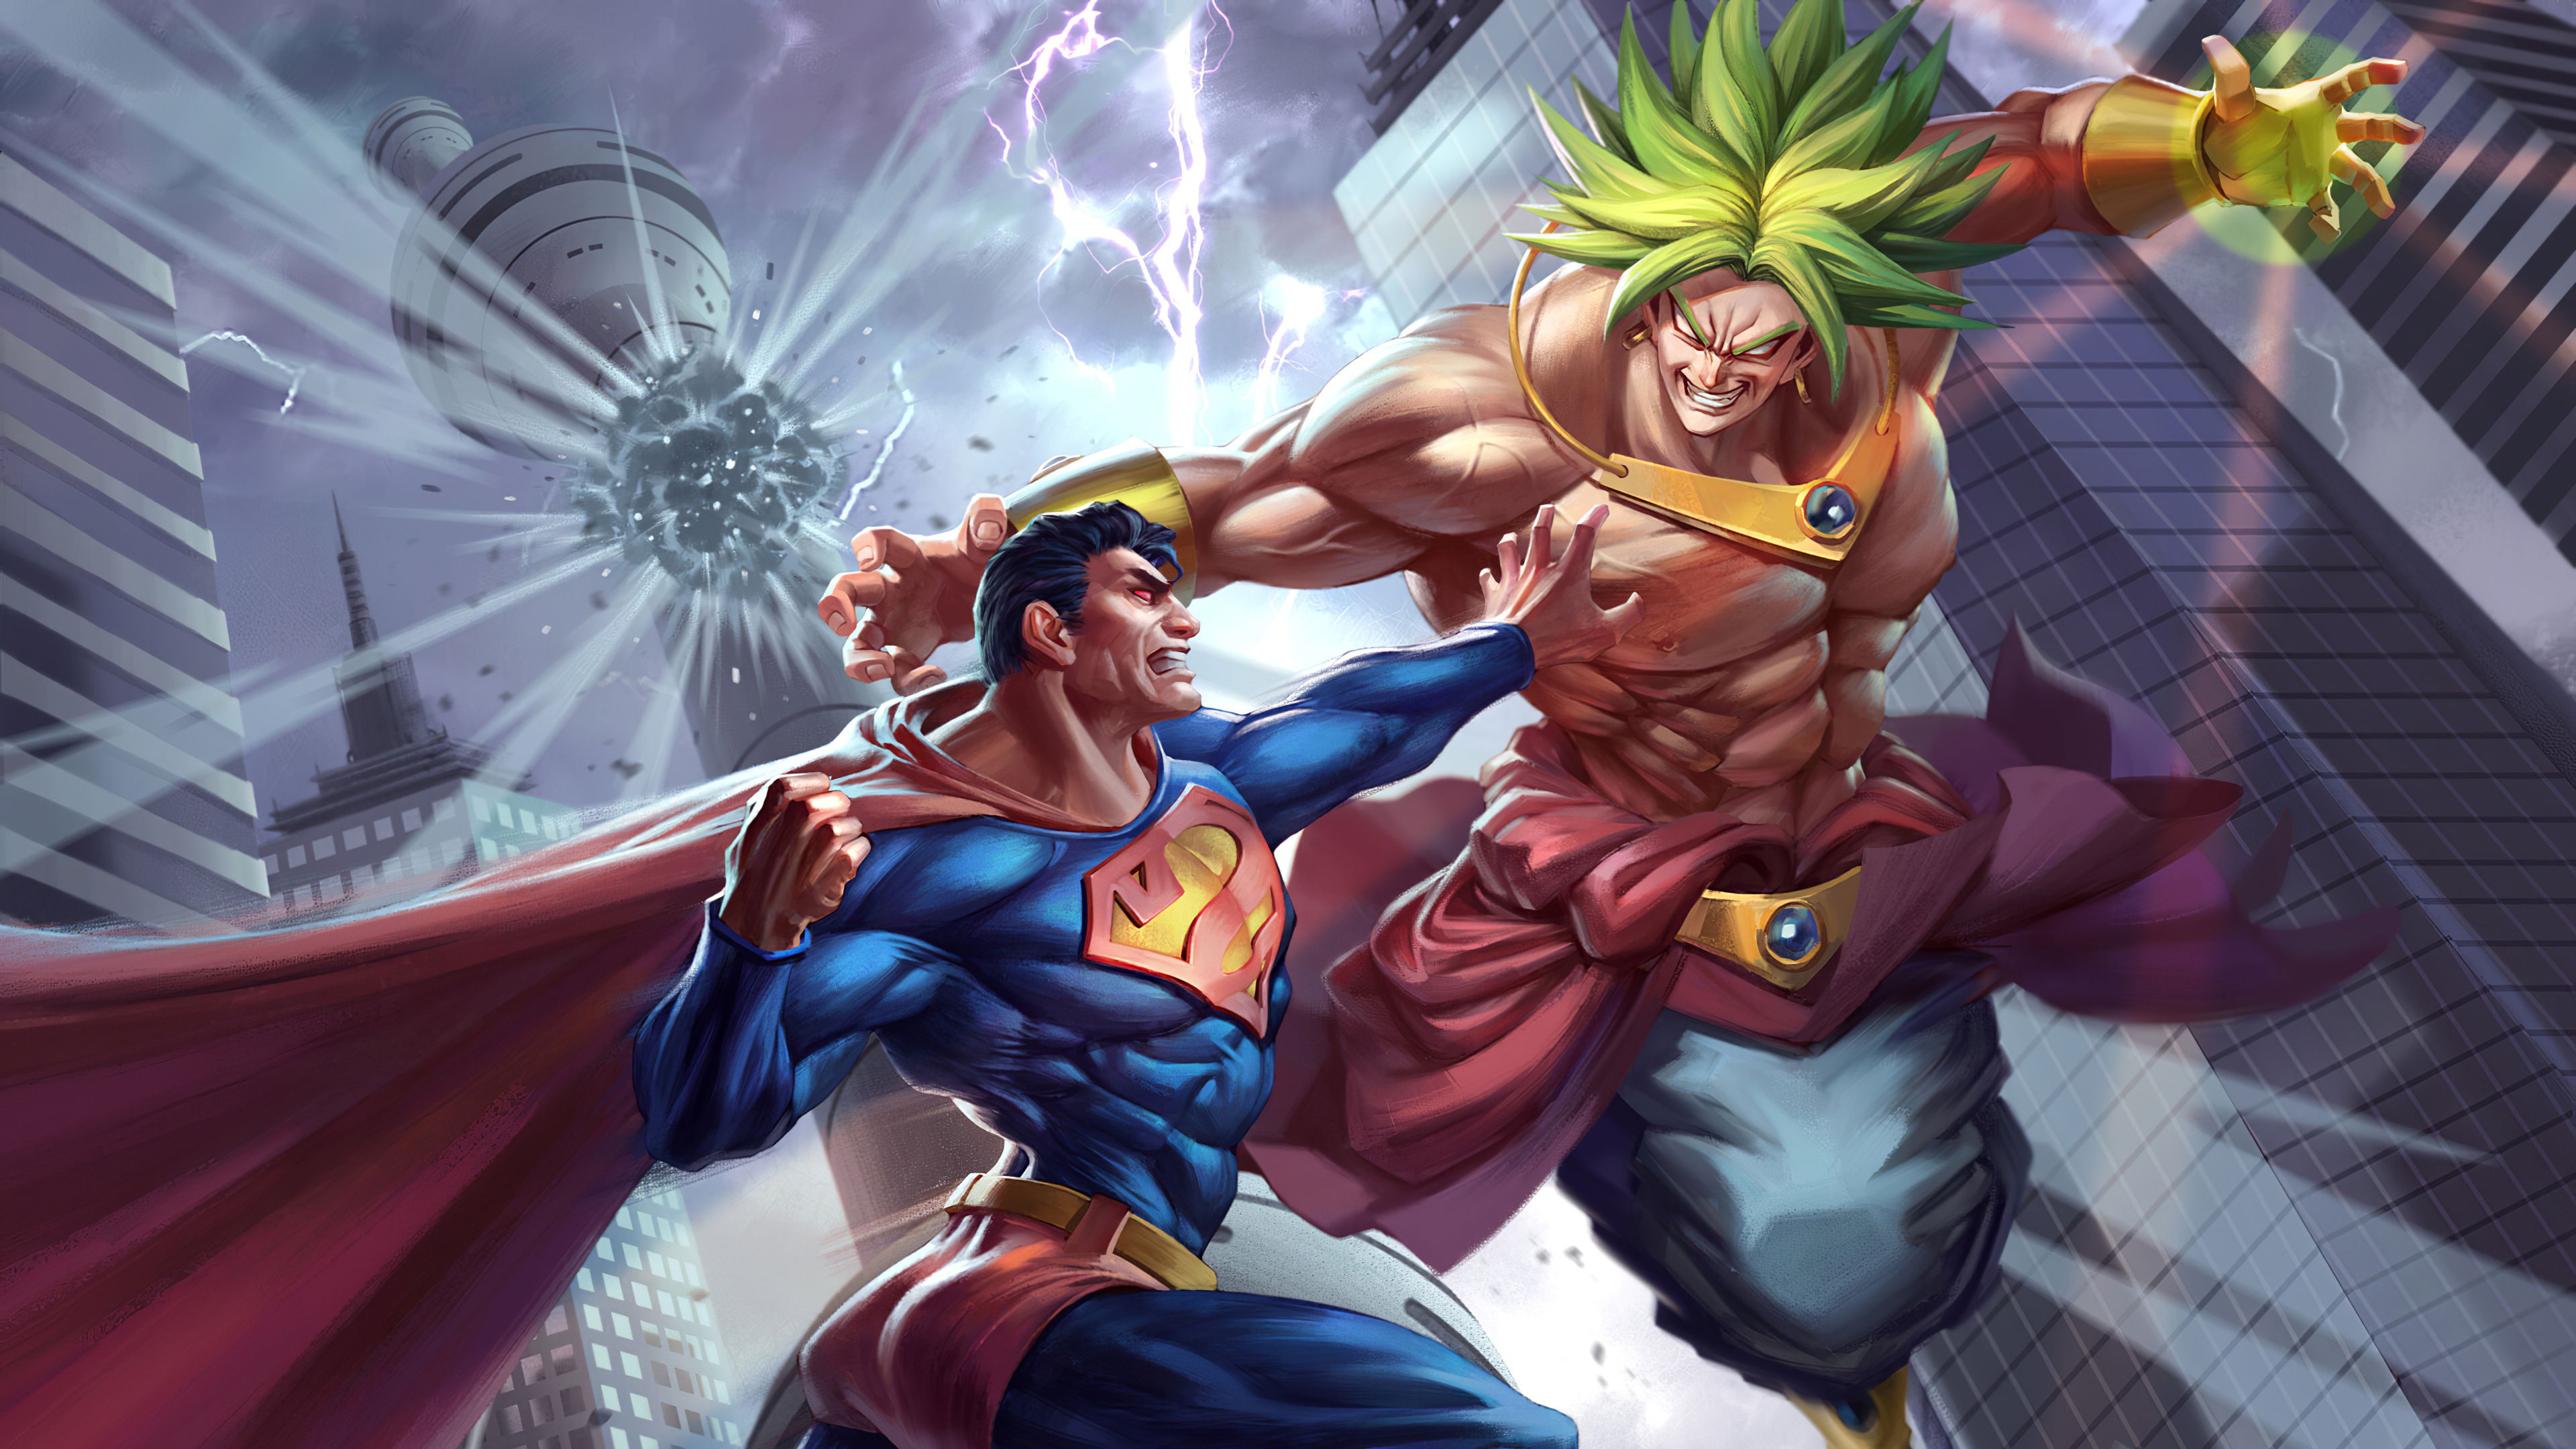 Superman Vs Broly Wallpaper Hd Superheroes 4k Wallpapers Images Photos And Background